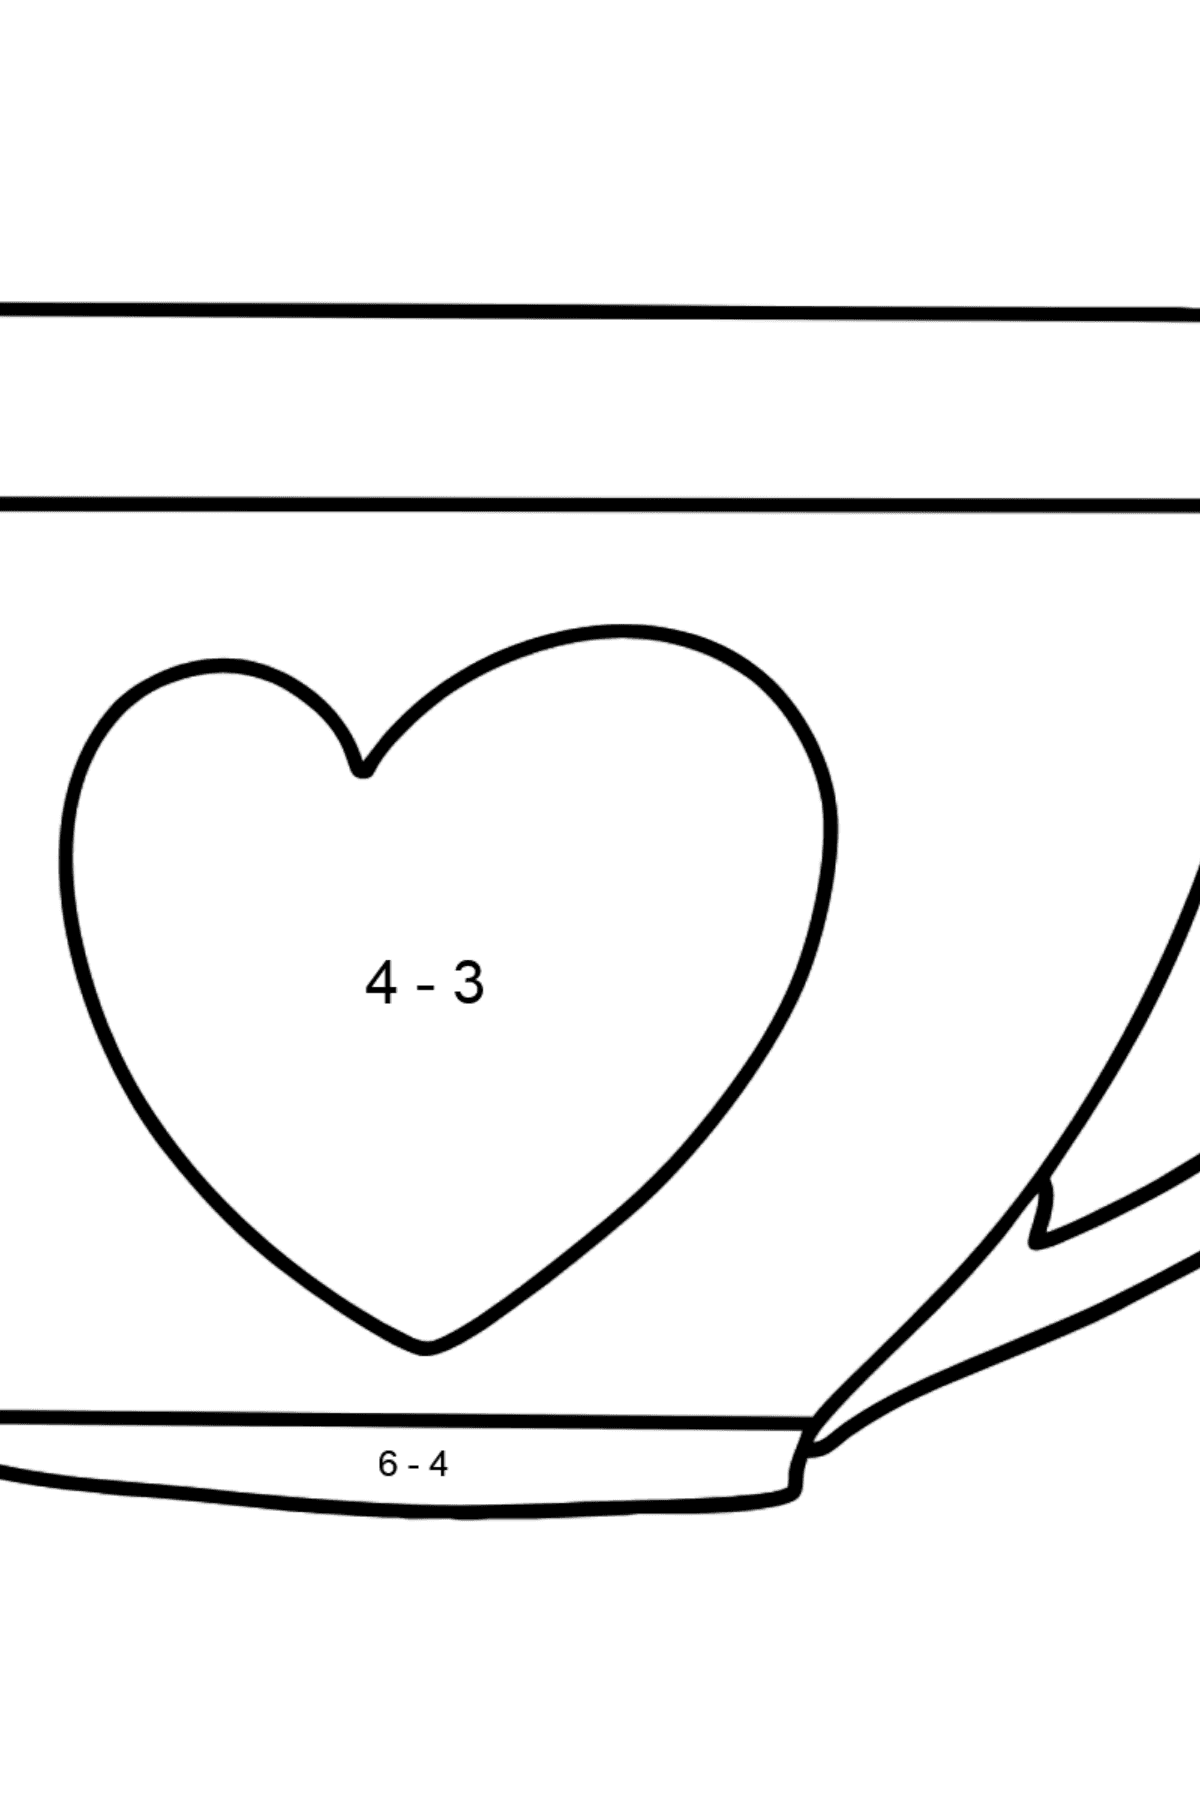 Cup coloring page - Math Coloring - Subtraction for Kids